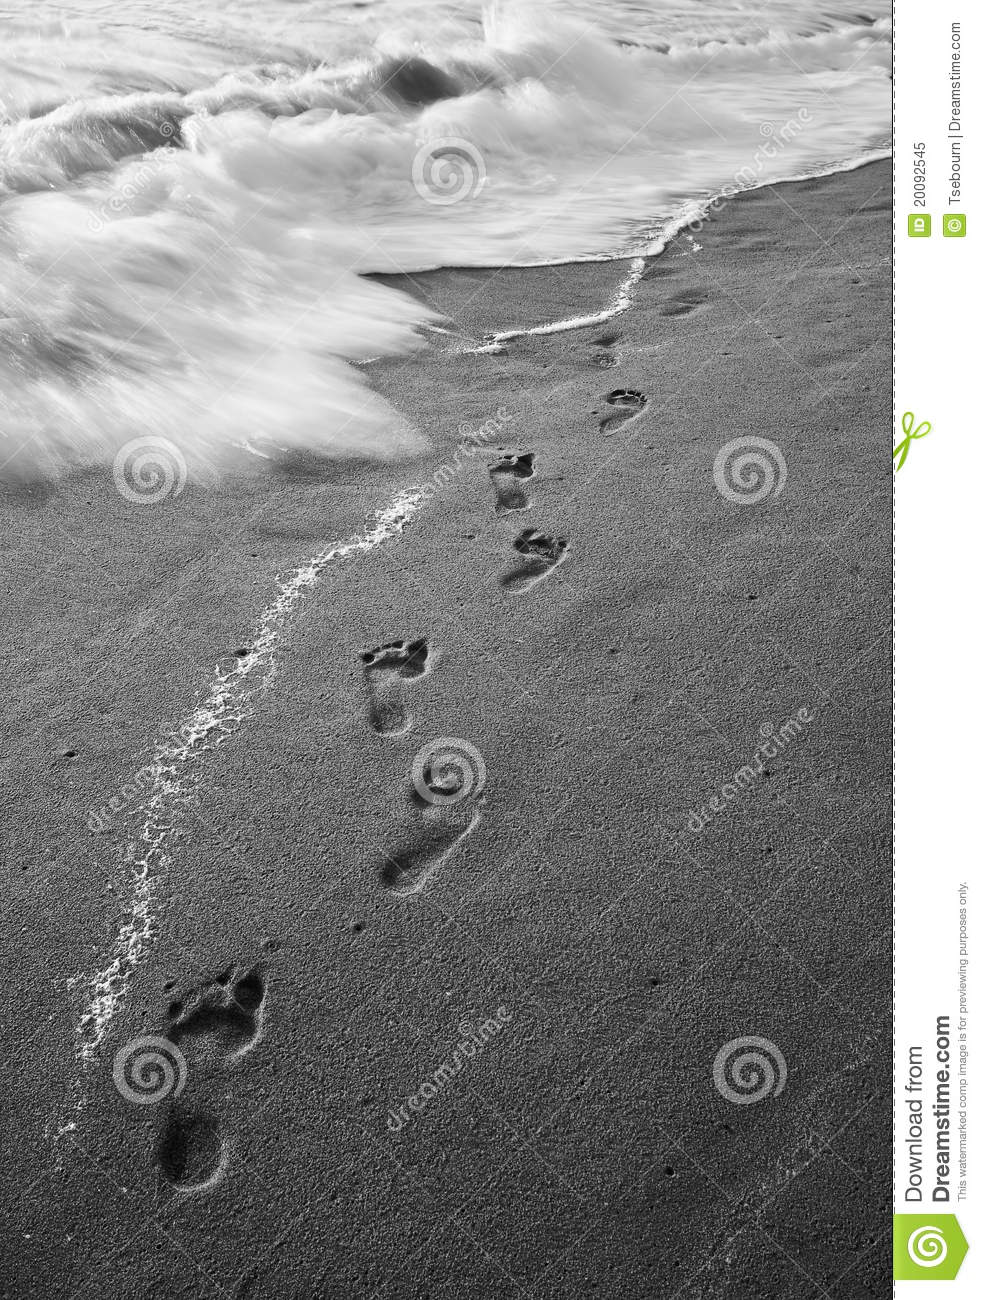 Black And White Foot Prints In The Sand Stock Image ...